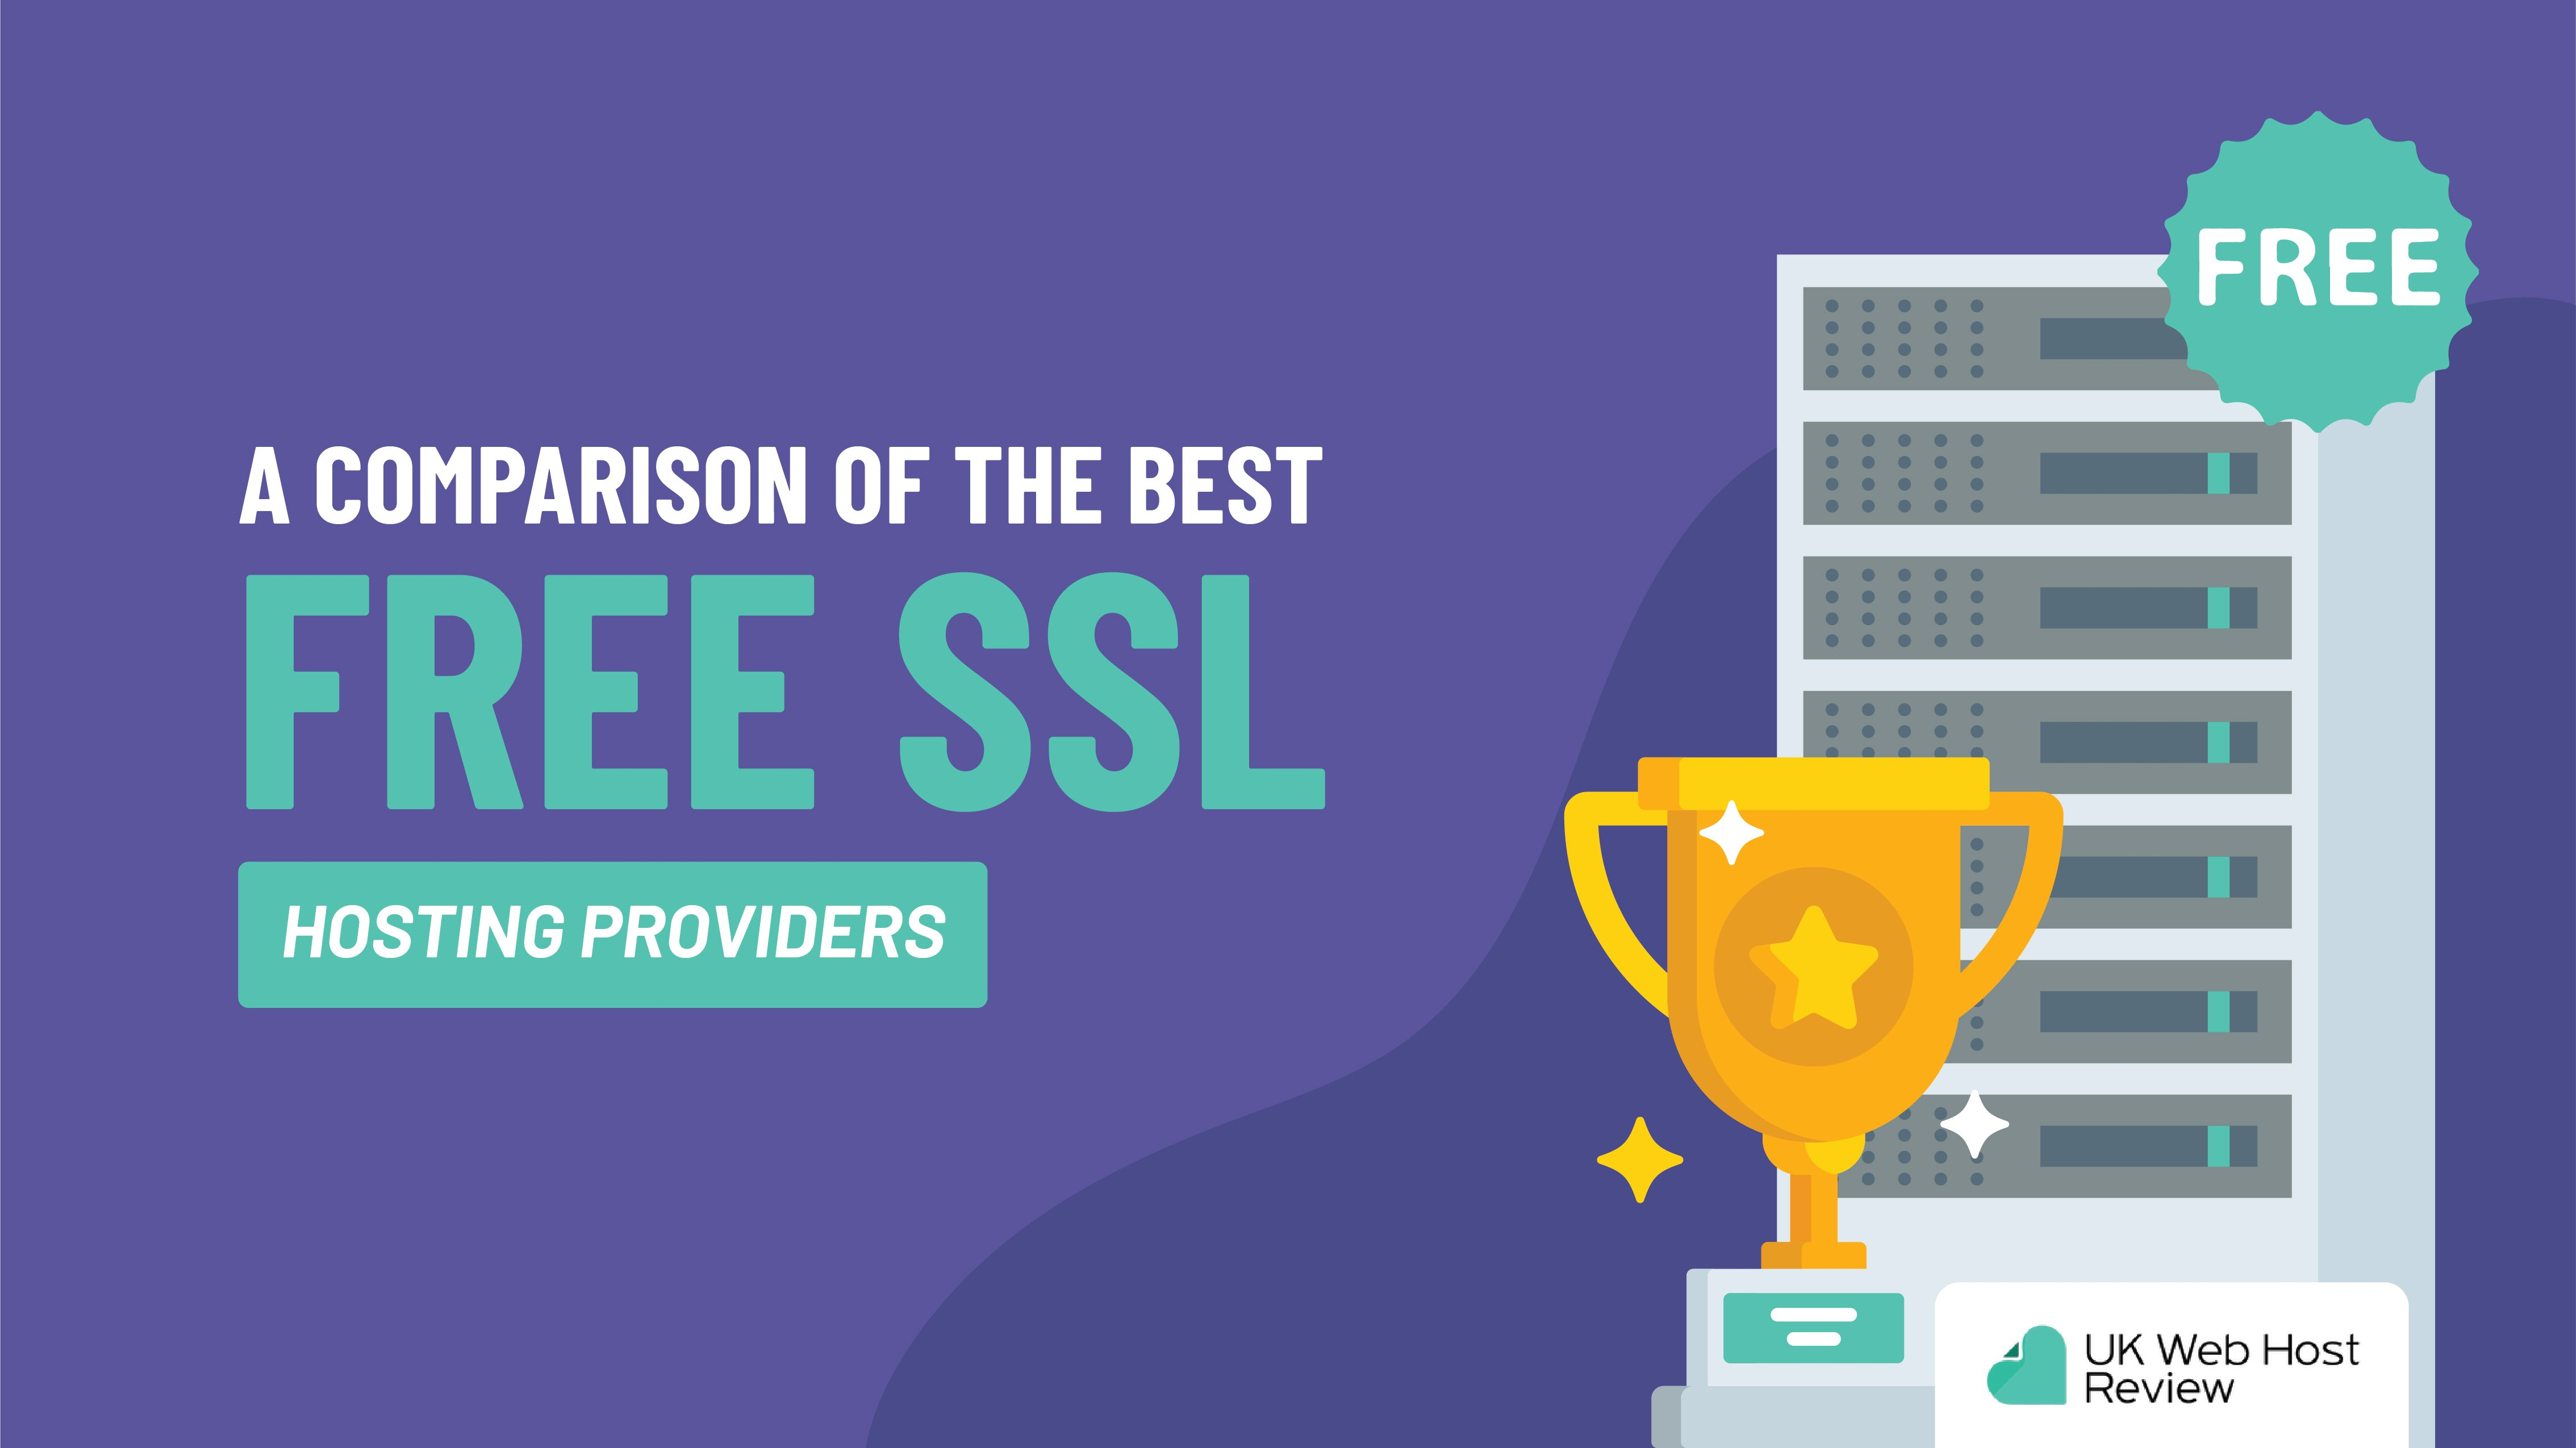 A Comparison of the Best Free SSL Hosting Providers